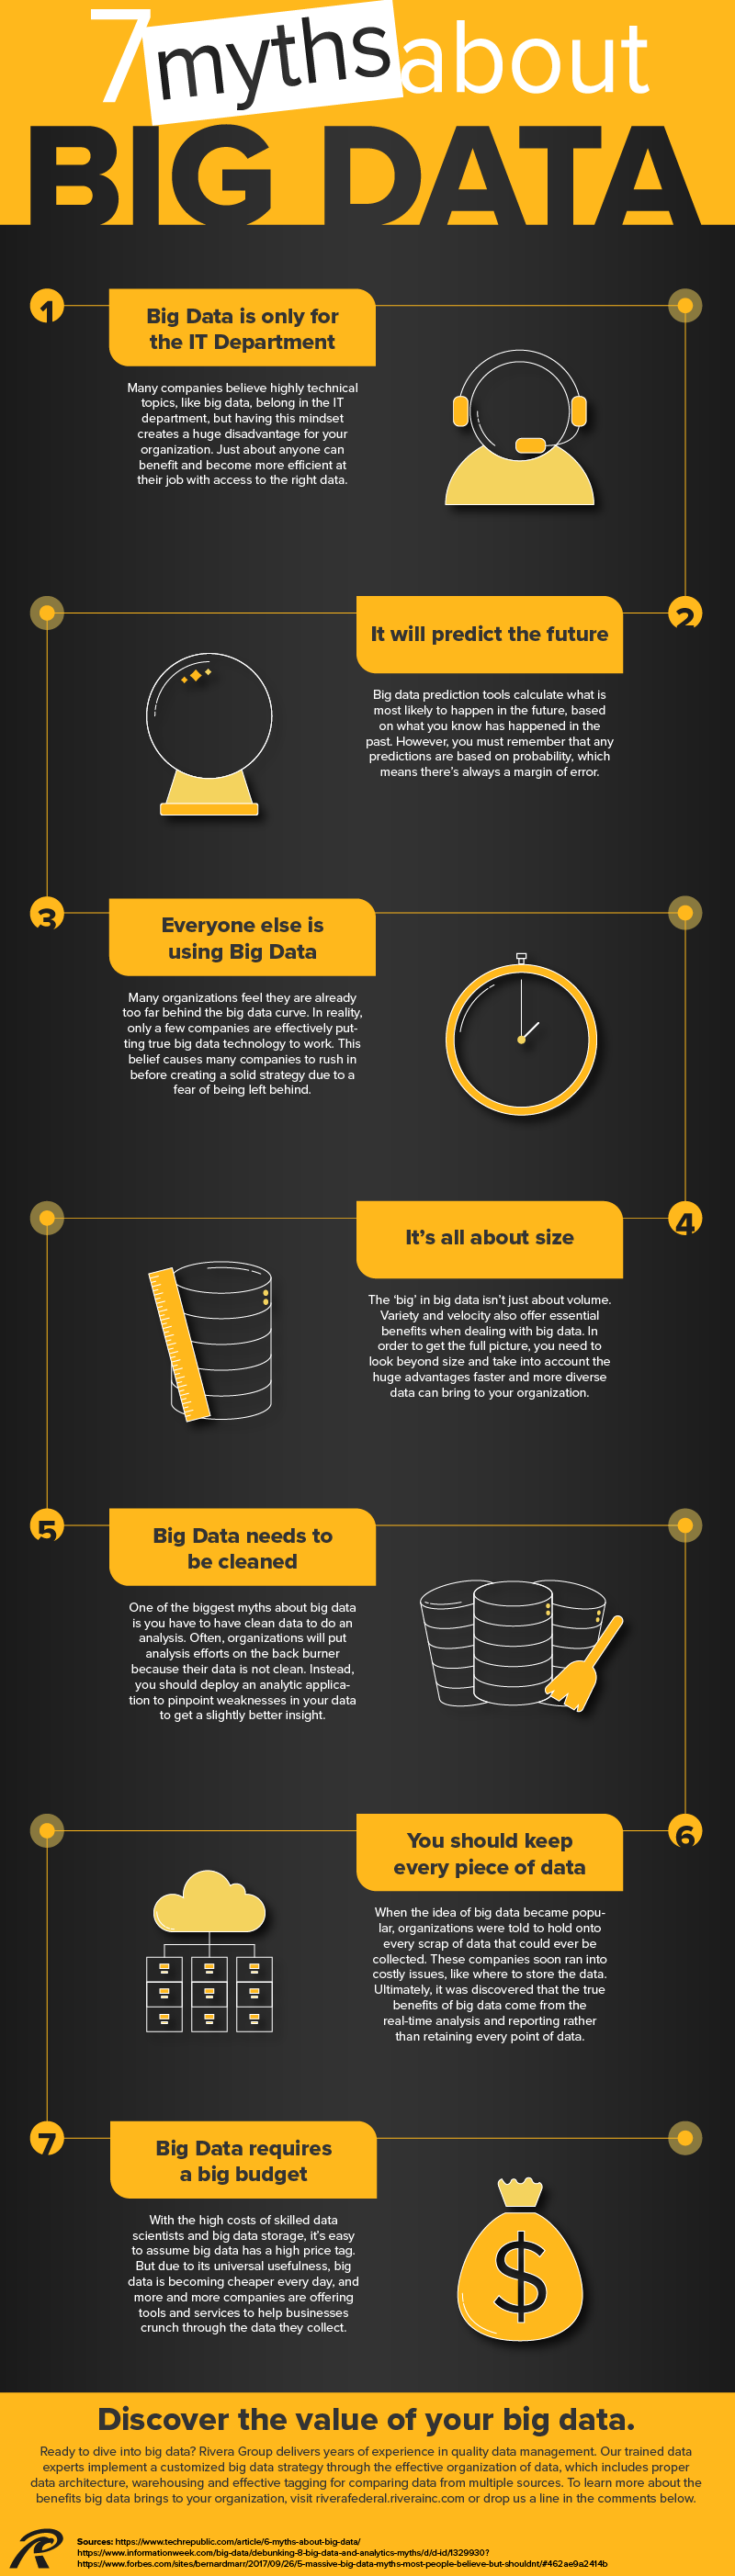 7 Myths about Big Data Infographic